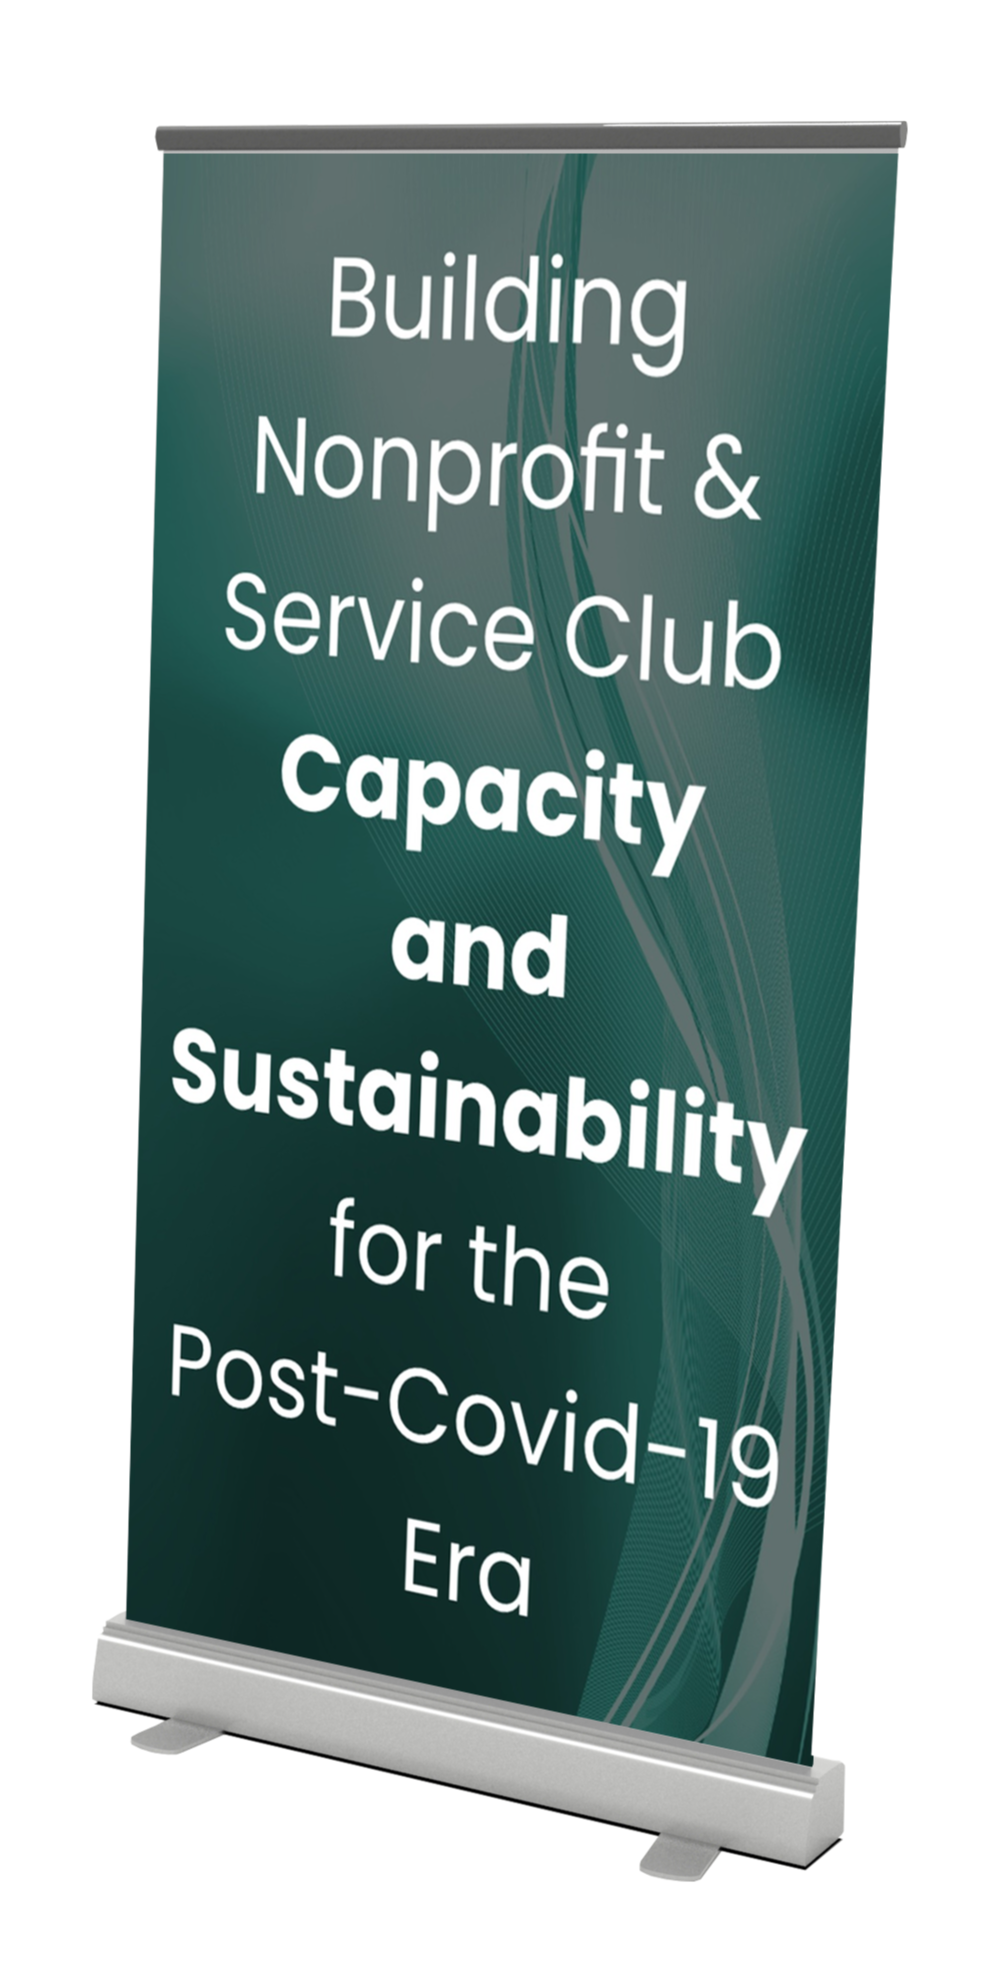 Building Nonprofit & Service Club Capacity and Sustainability for the Post-Covid-19 Era